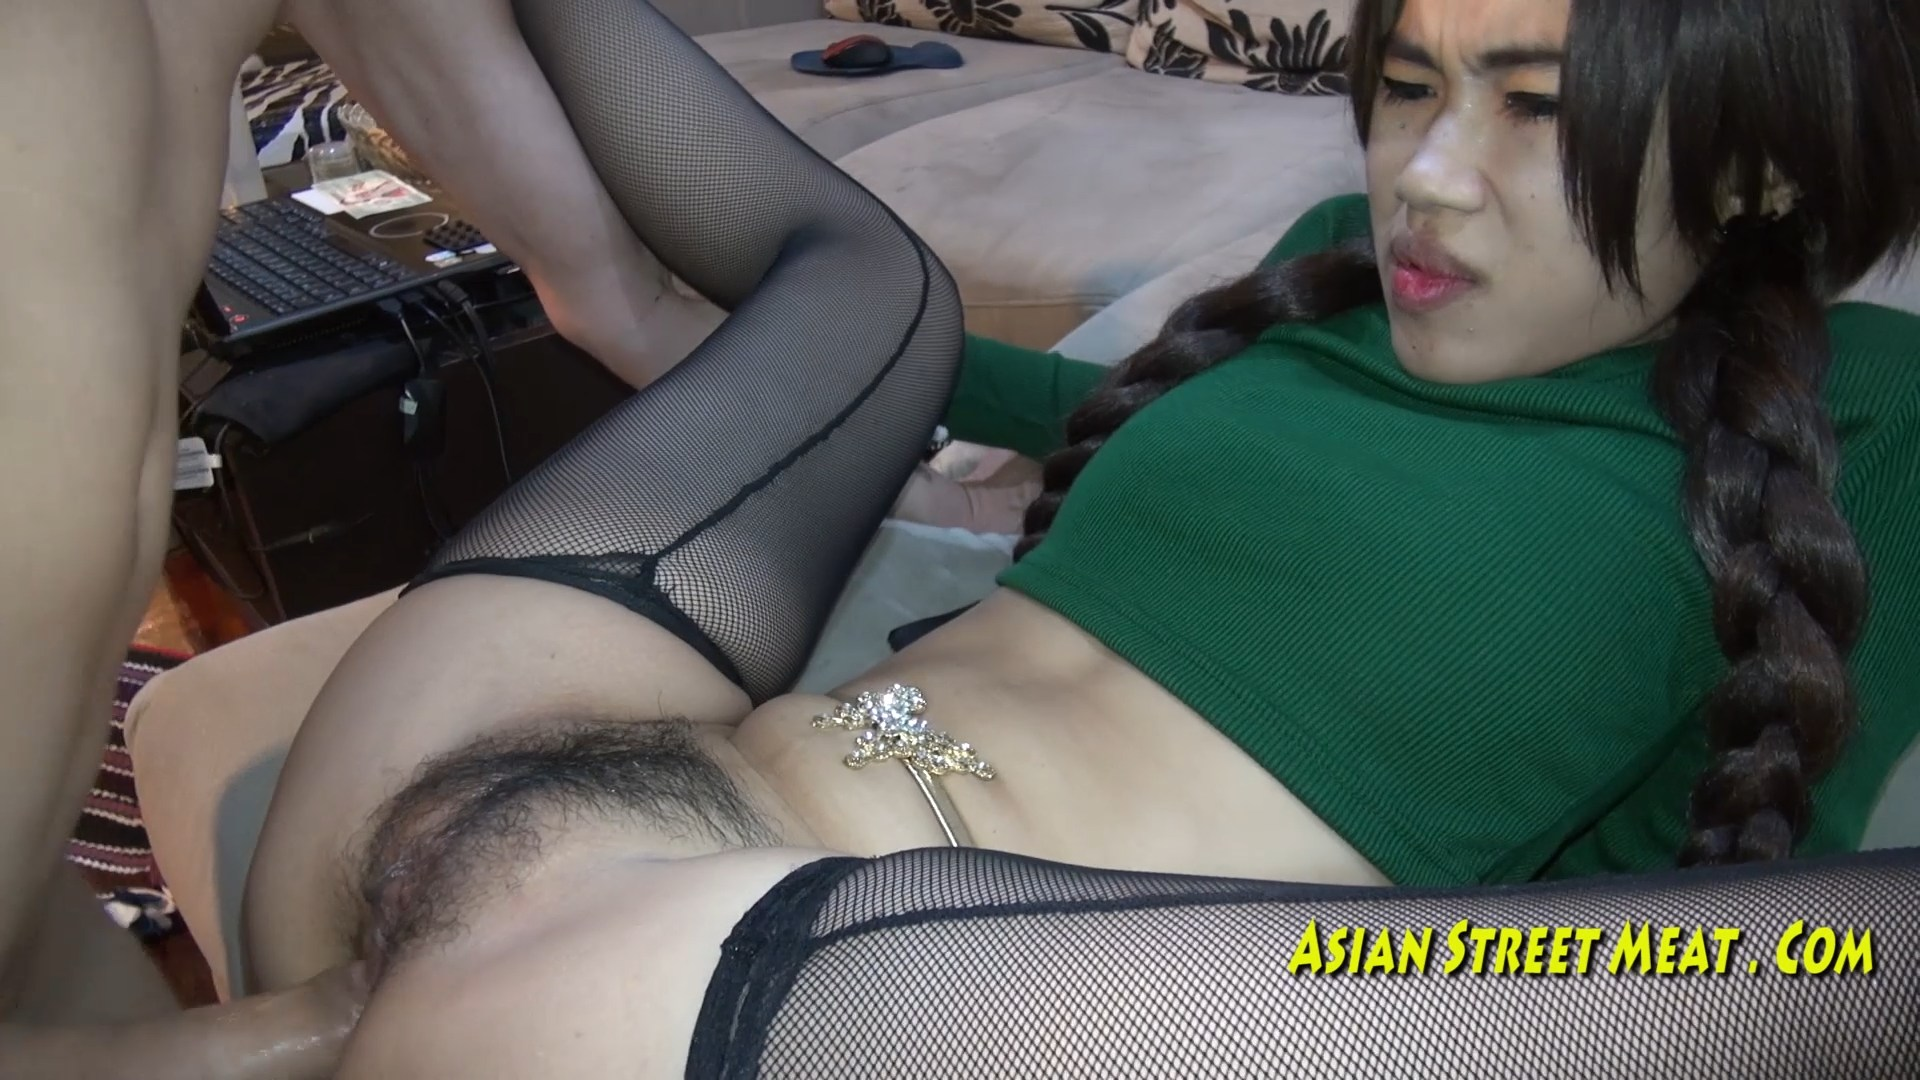 Asian meat porn